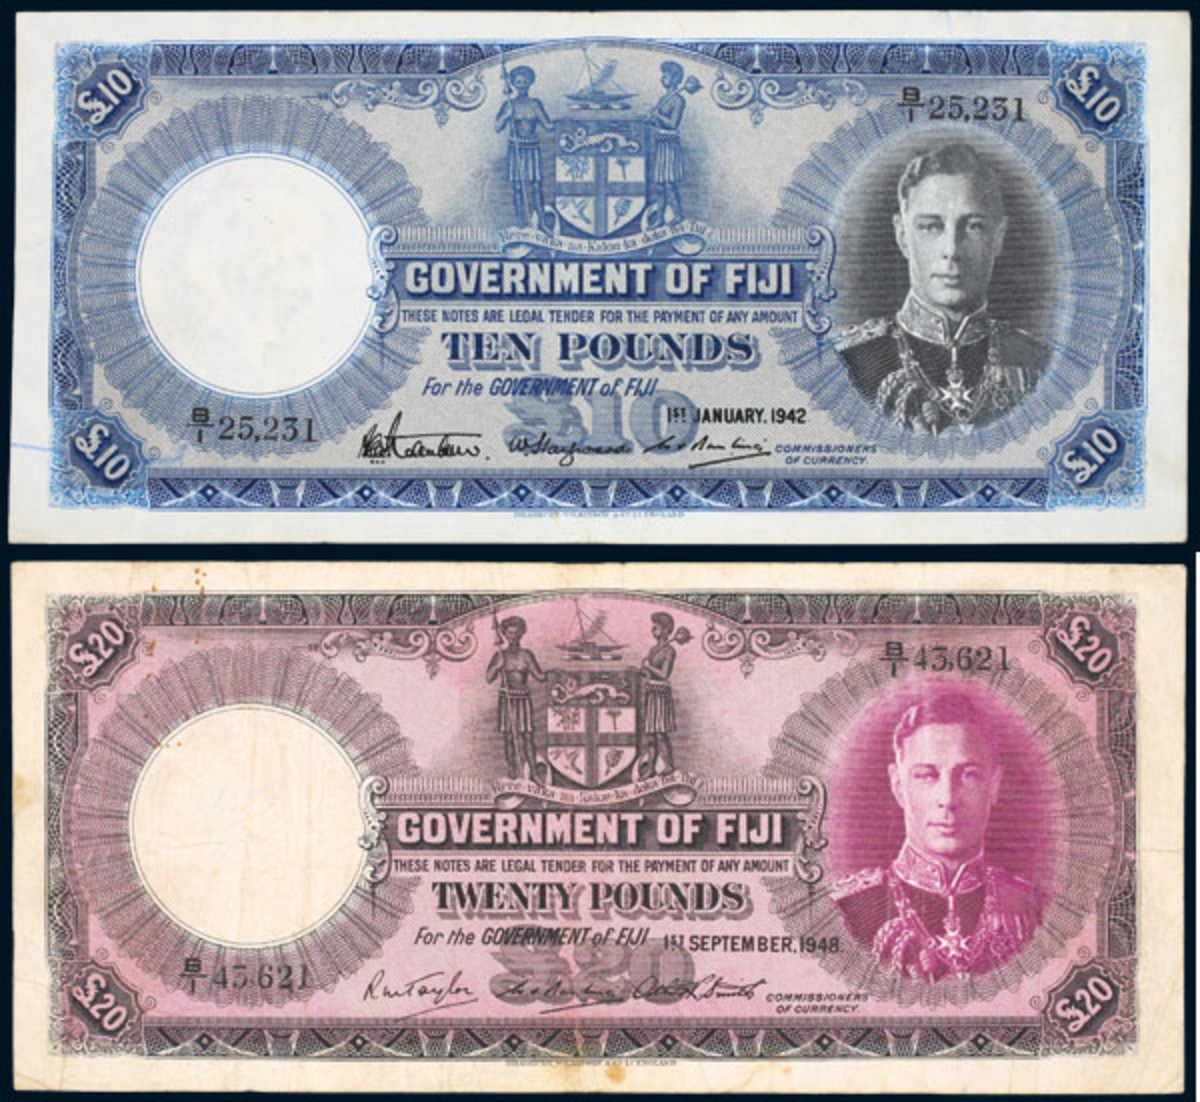 The George VI Fiji £10 (Jan. 1, 1942, P-42a) and £20 (Sept. 1, 1948, P-43d) that realized $14,564 and $10,013 respectively at Noble Numismatics' Sydney sale in November.